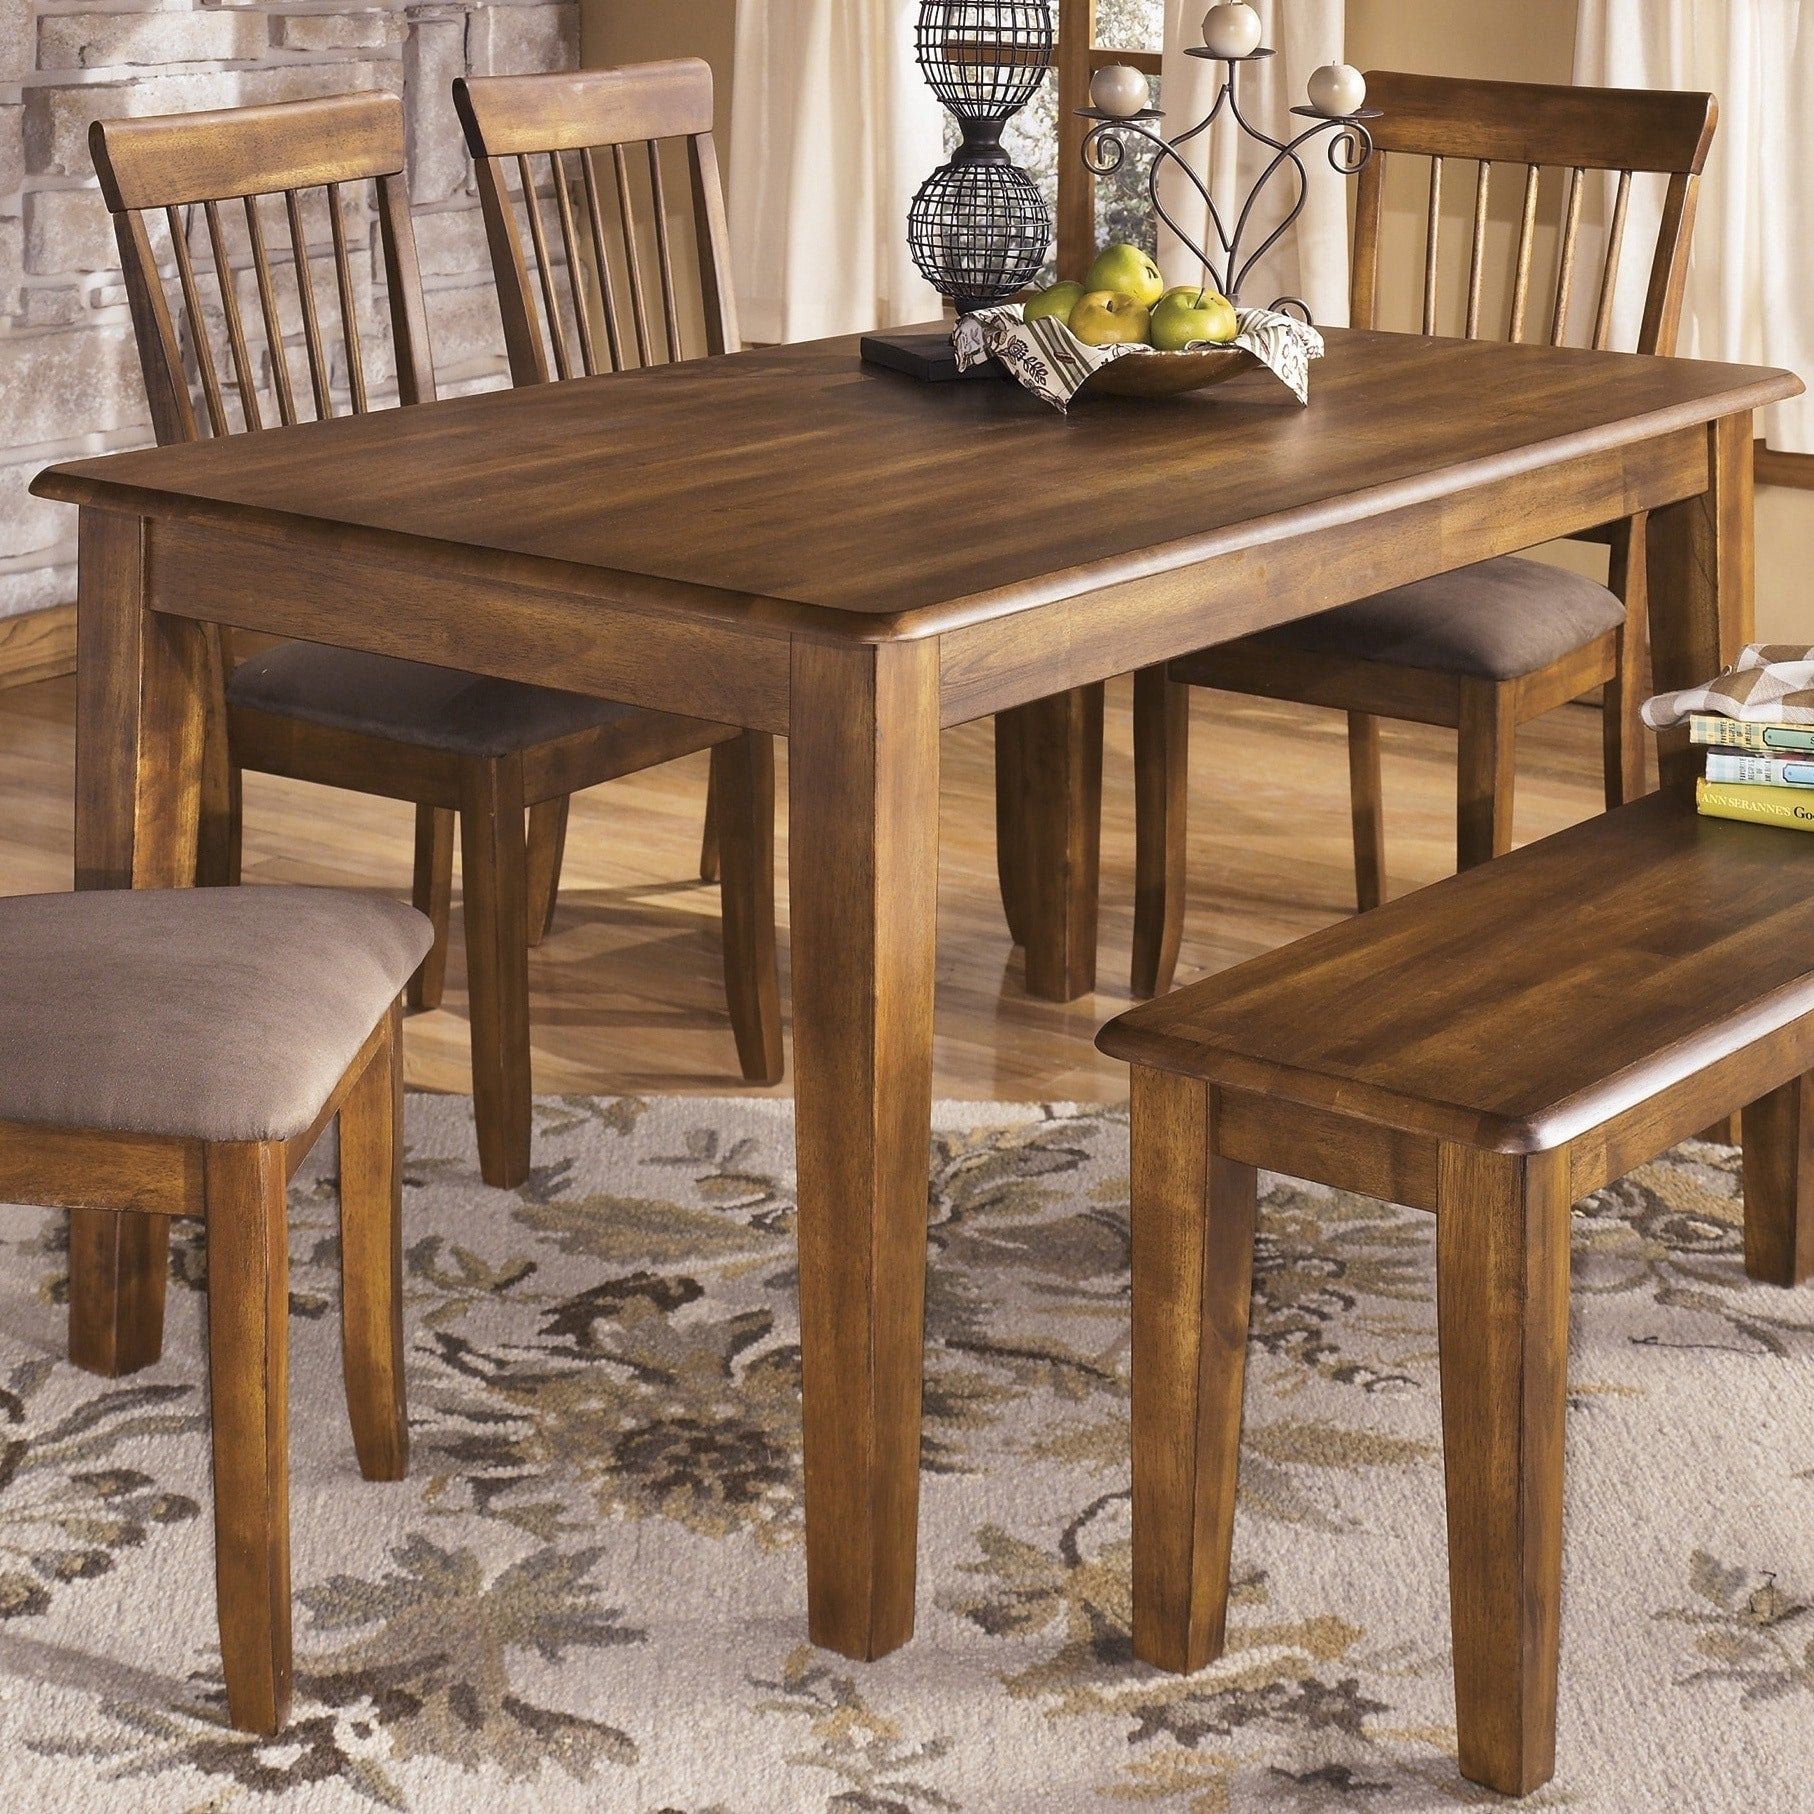 Berringer Rectangular Dining Room Table - Brown